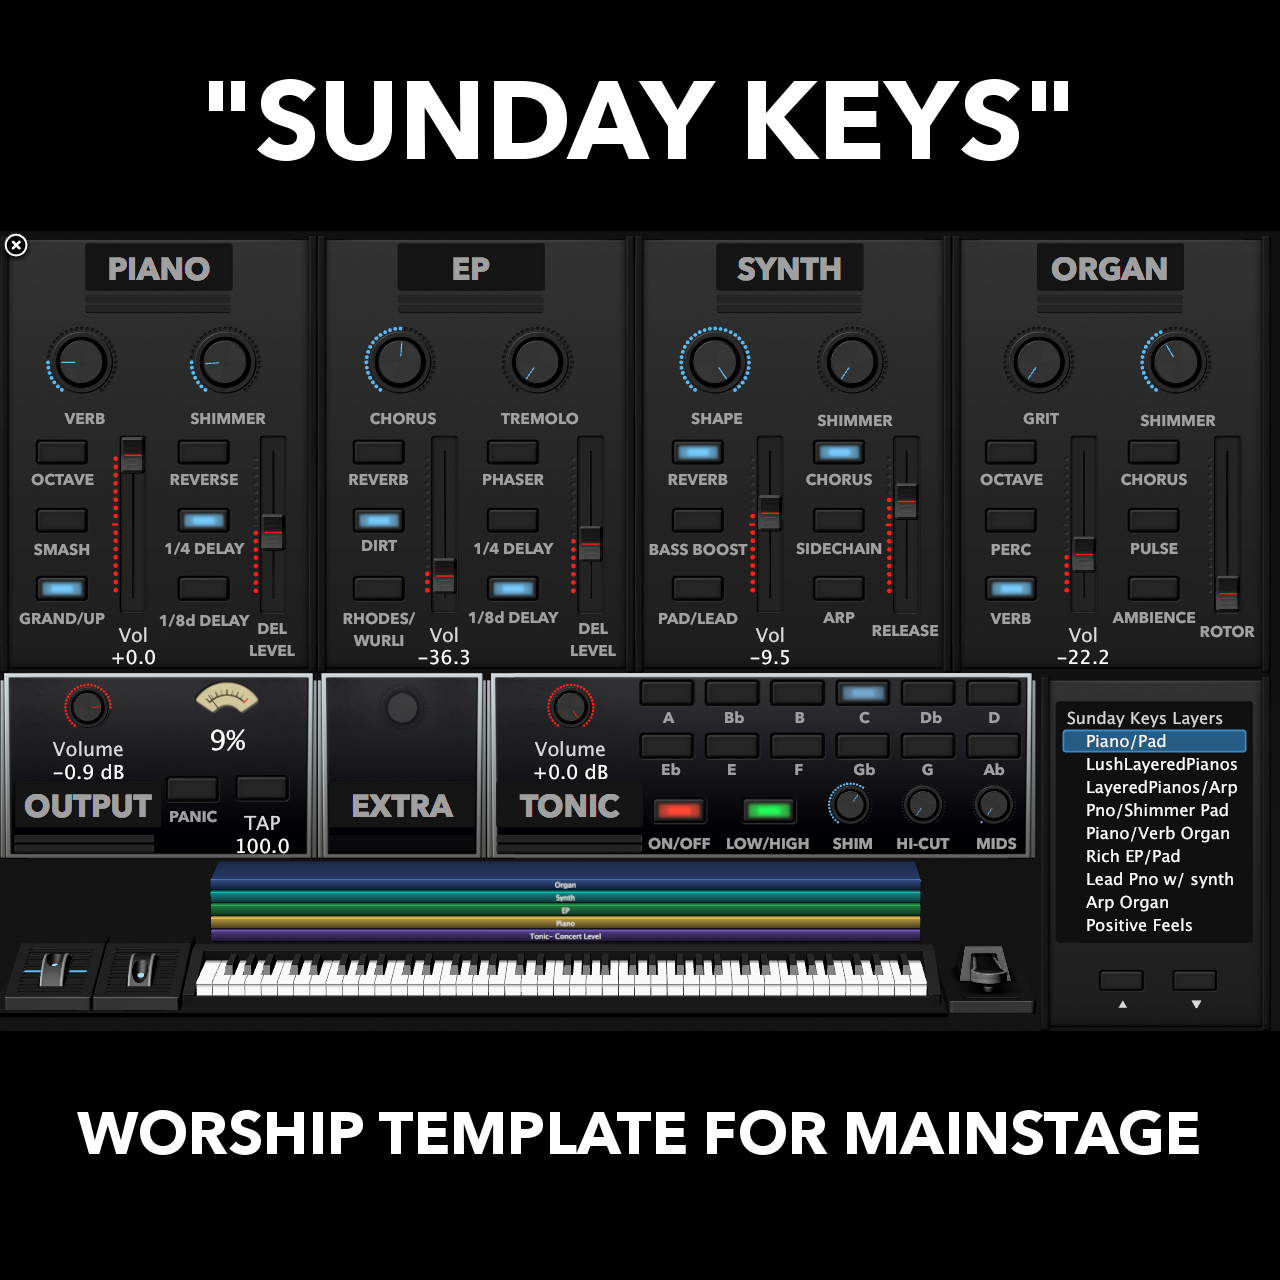 Pin by Social Co on Music | Key, Templates, Patch design